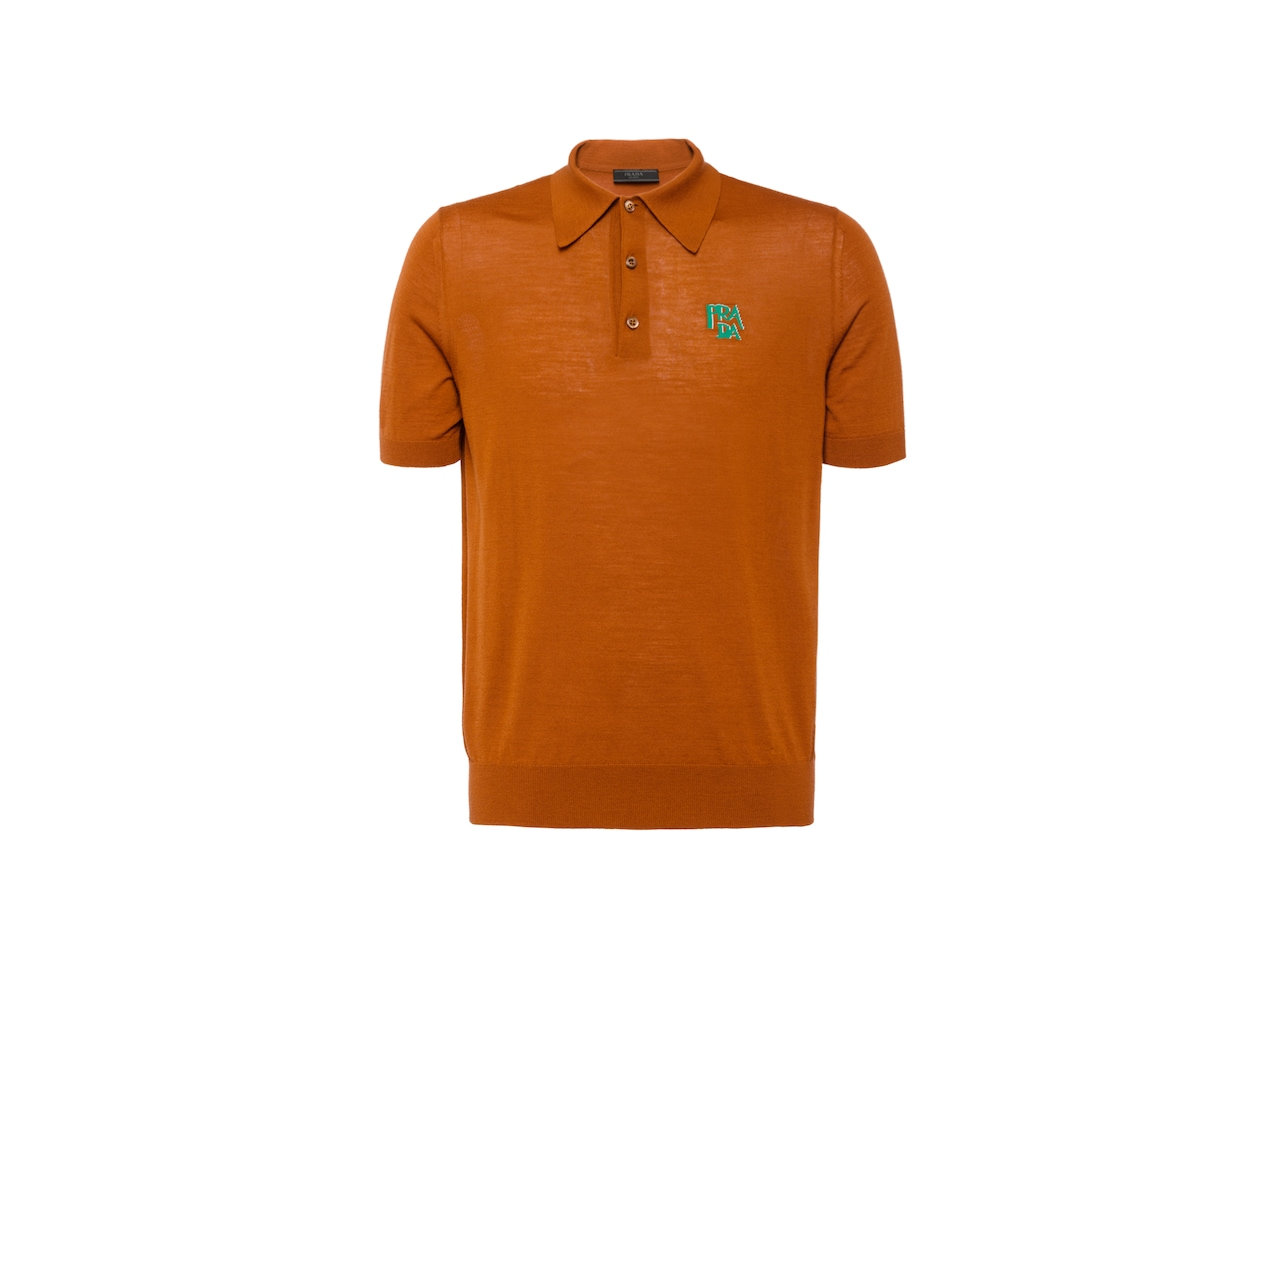 Wool polo shirt with logo